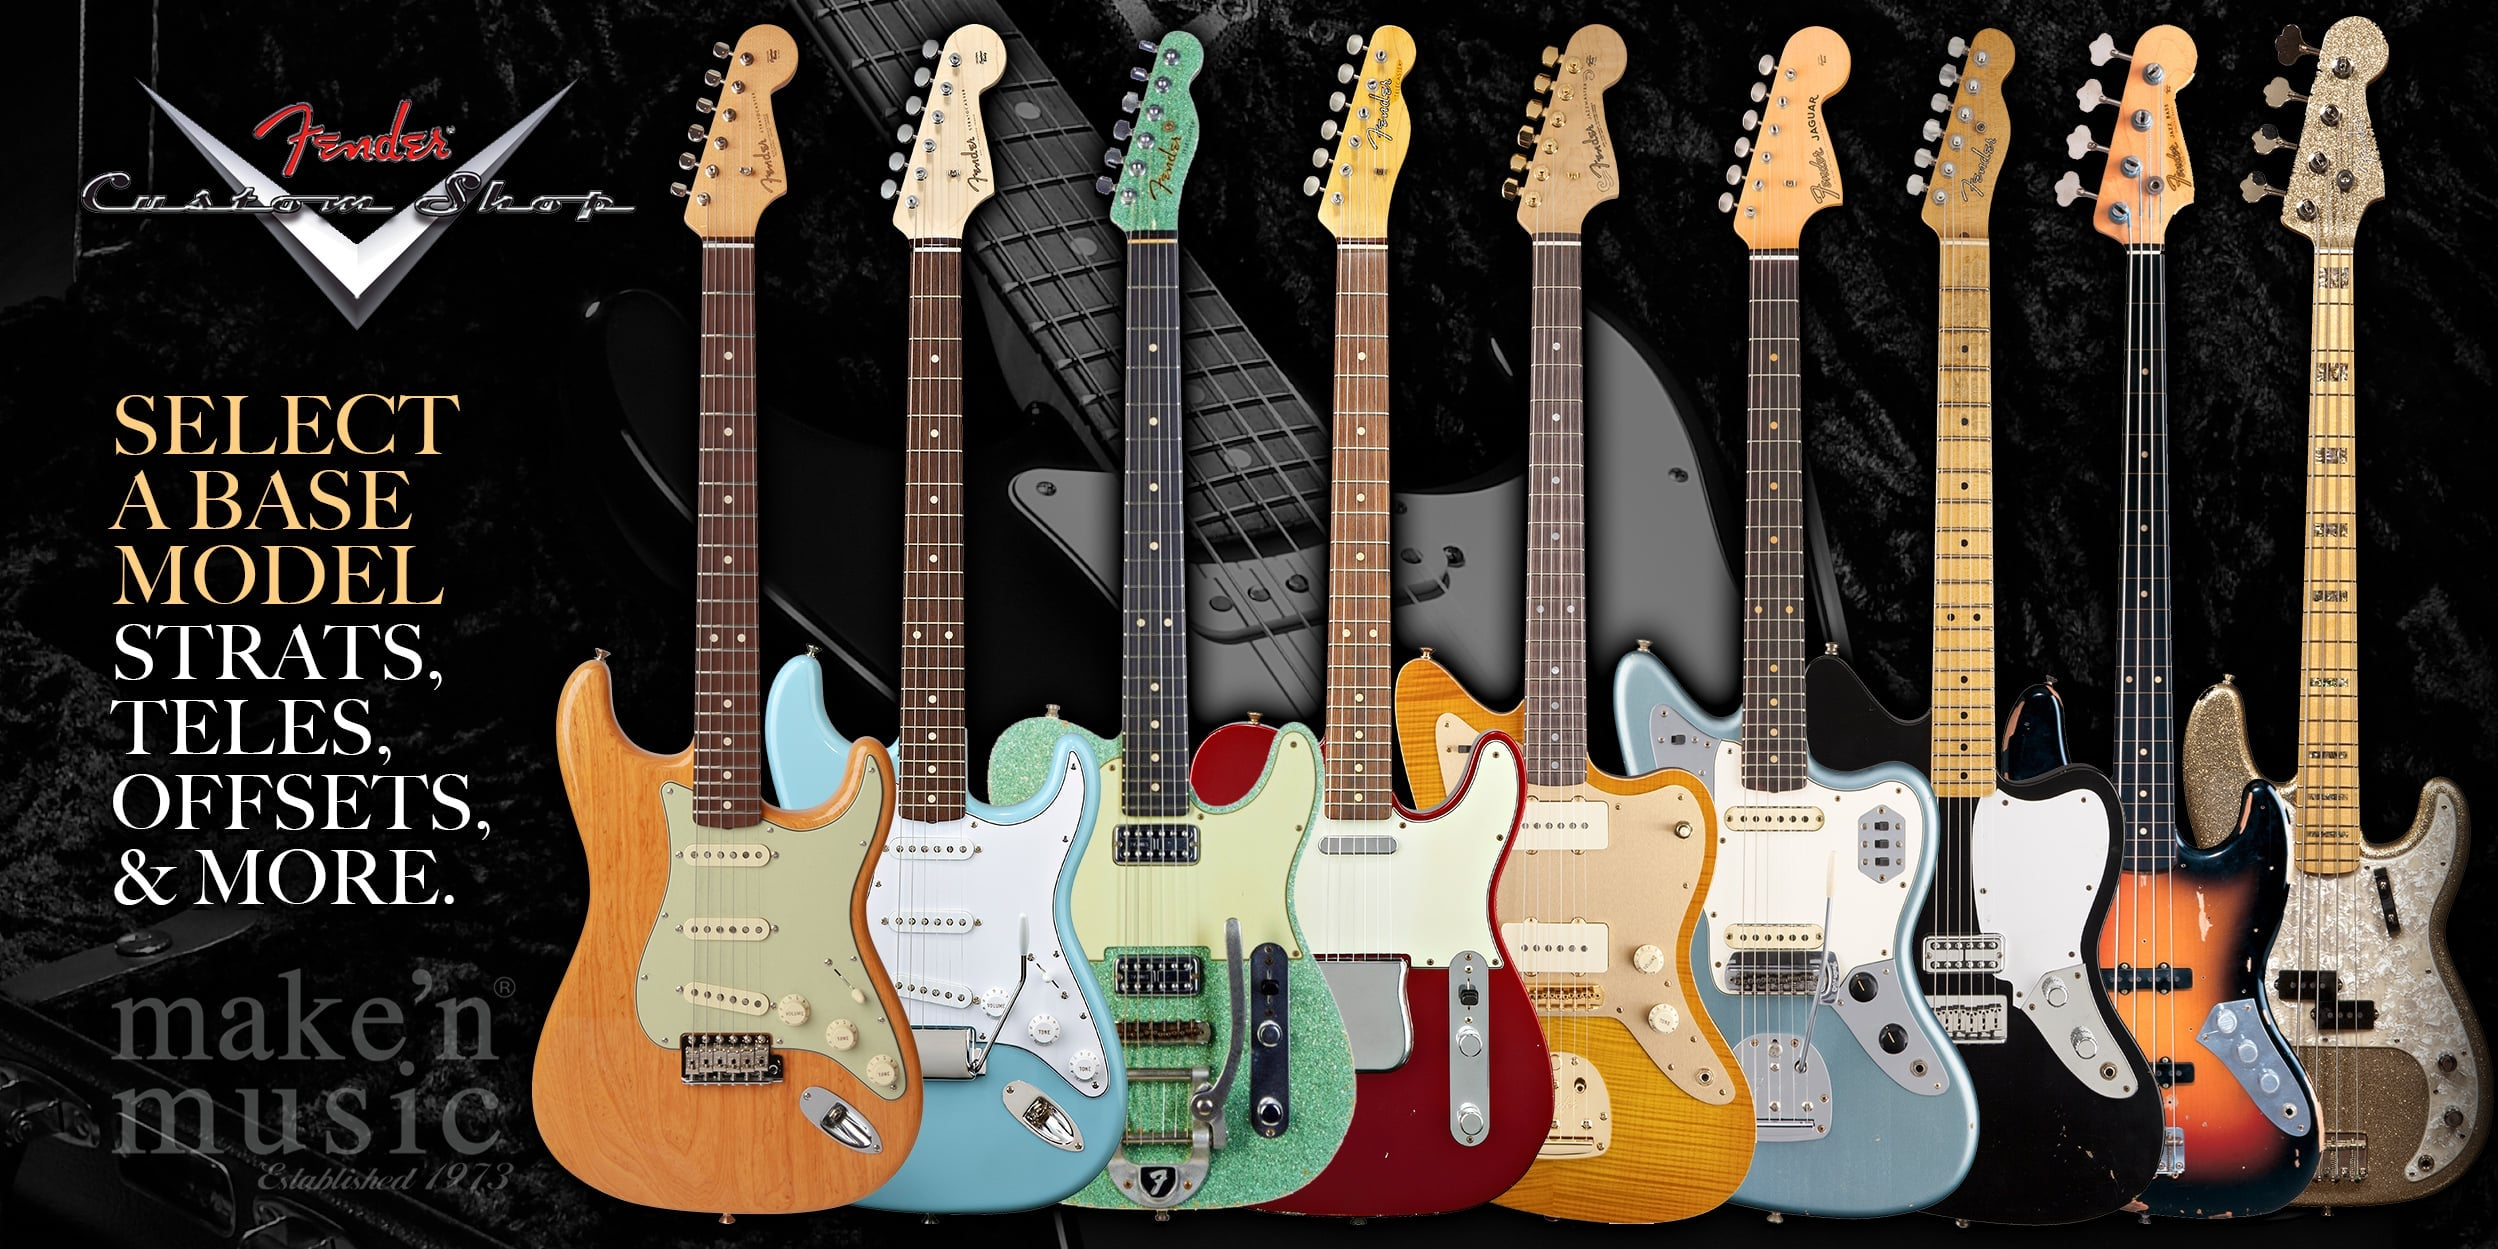 Fender Custom Shop Models - Strats, Teles, Offsets